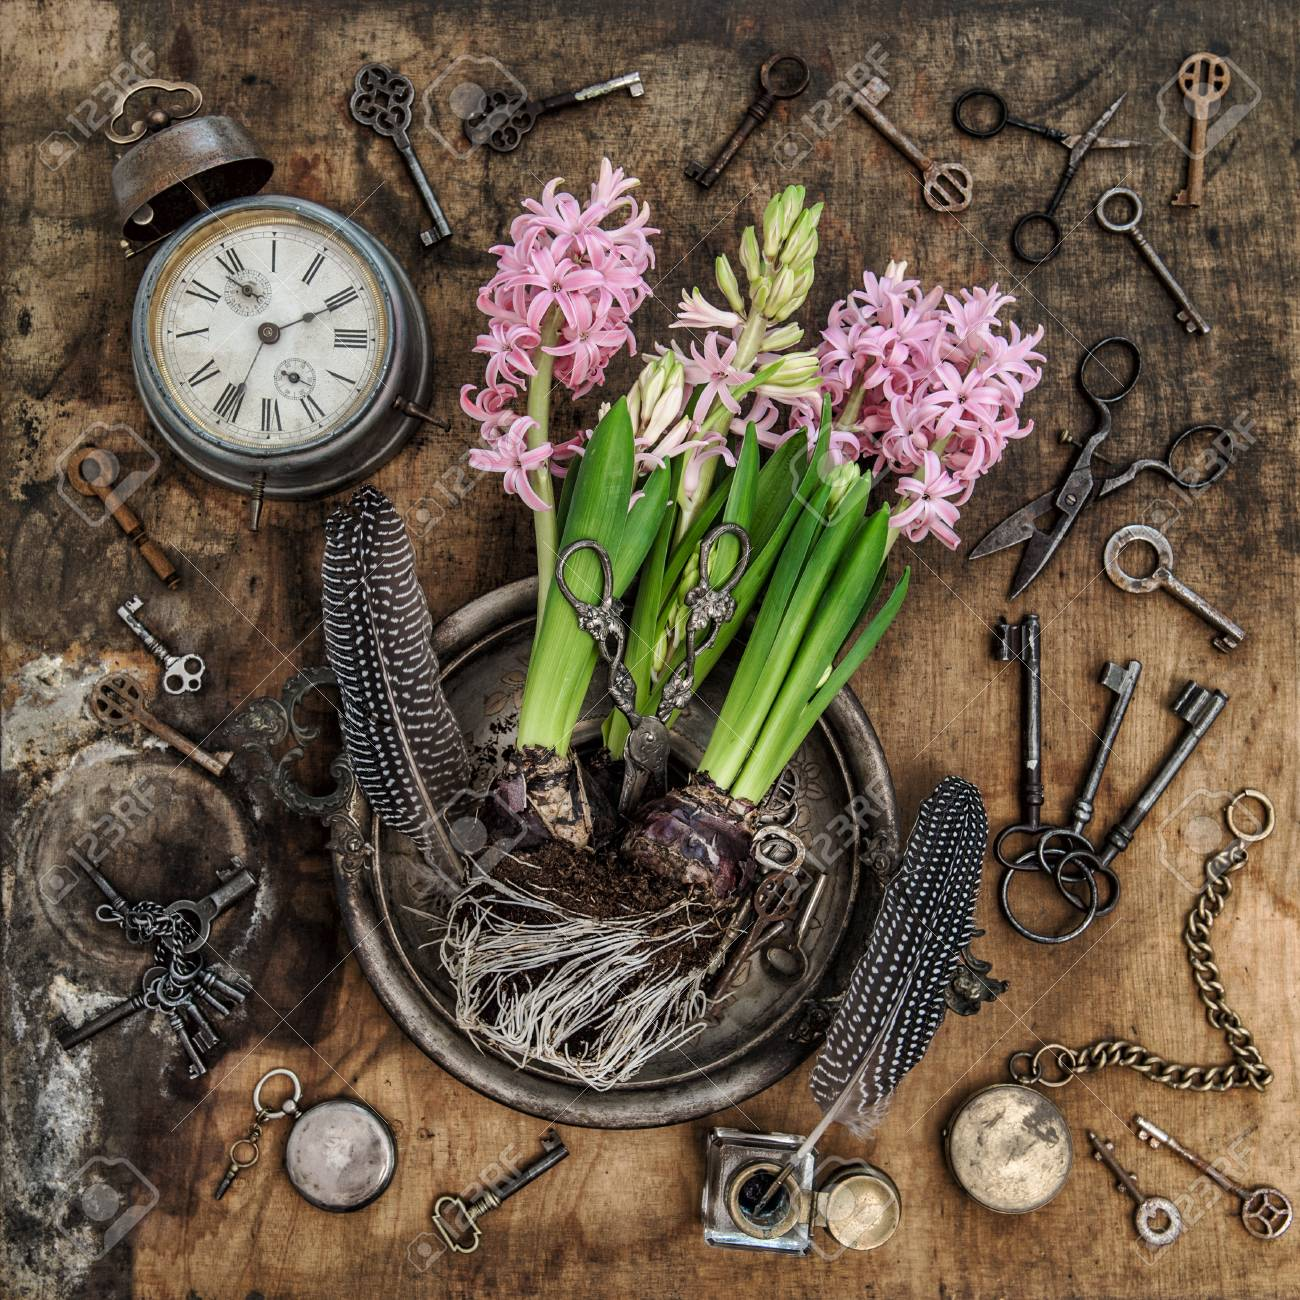 Vintage Still Life With Hyacinth Flowers Old Keys Clock Scissors